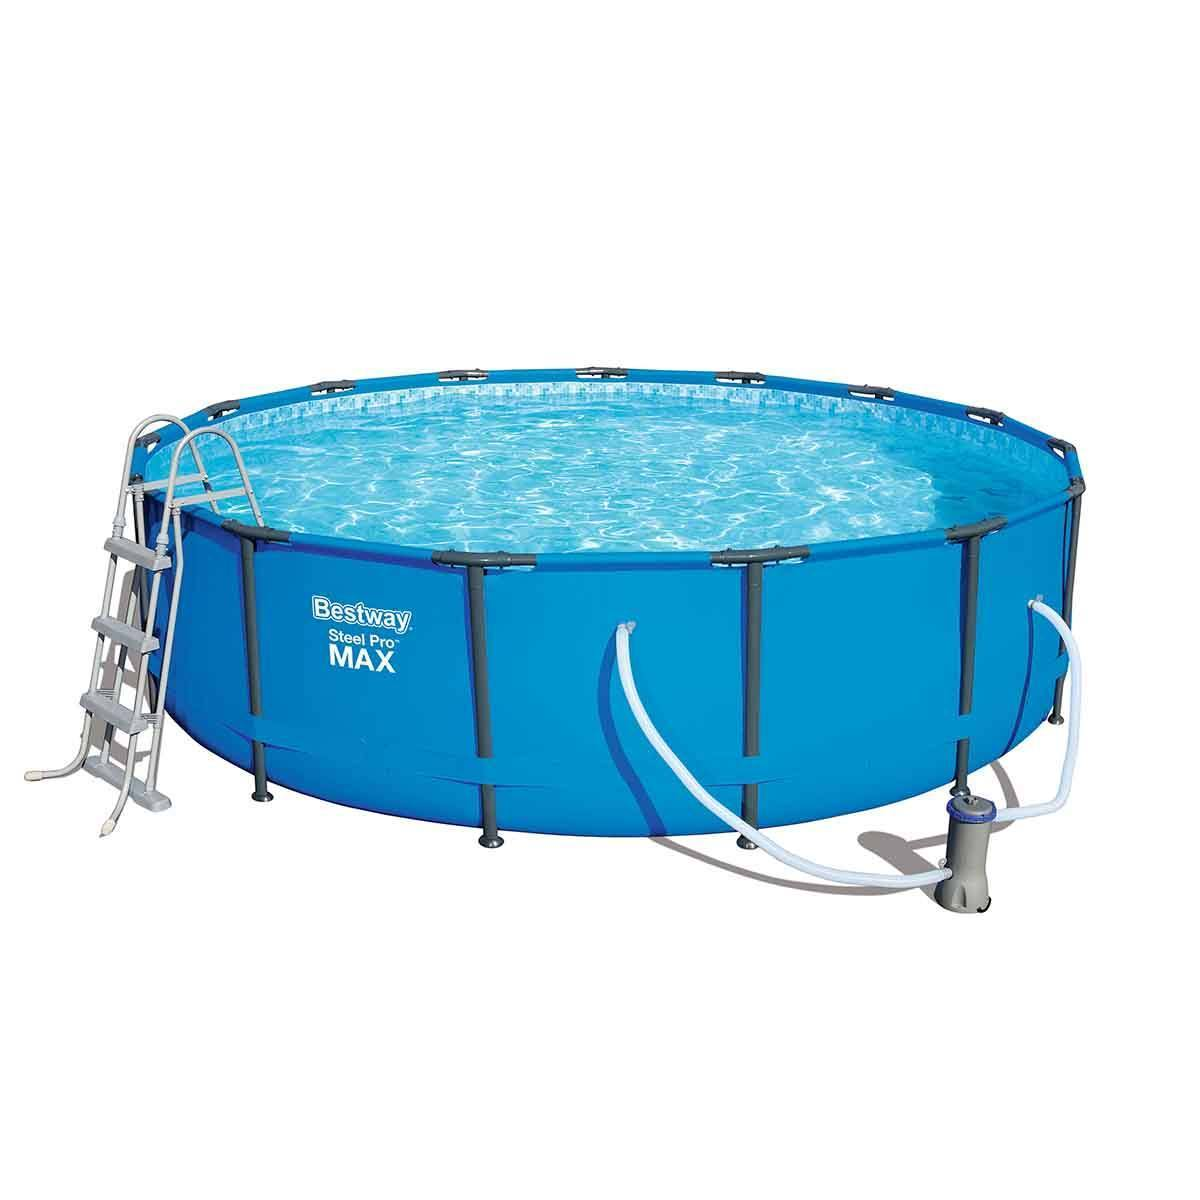 Pool Bodensauger Erfahrung Steel Pro Max Pool Set